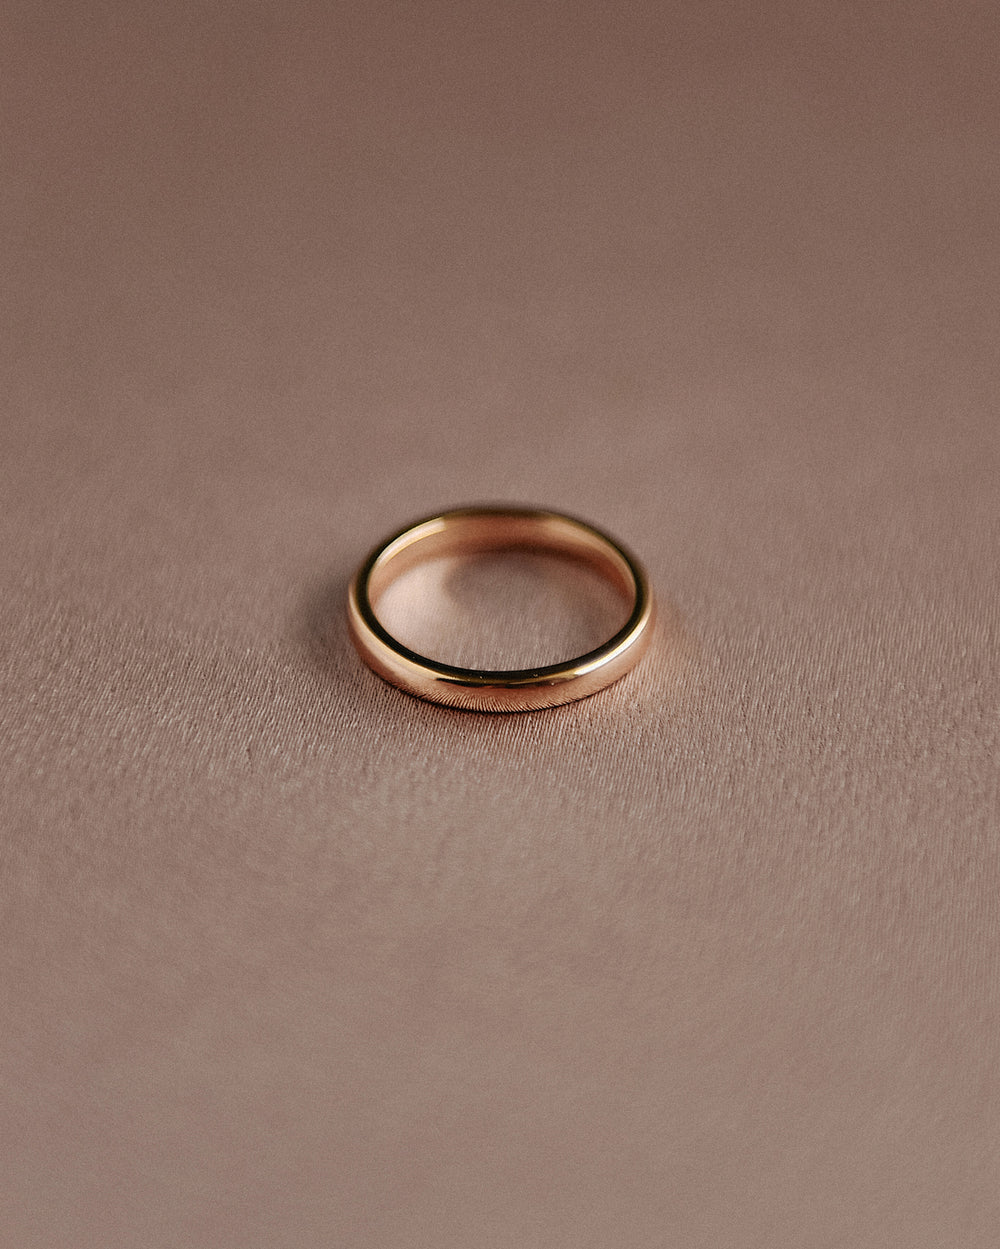 Alexa Sterling Silver Simple Band Ring - Gold Plated